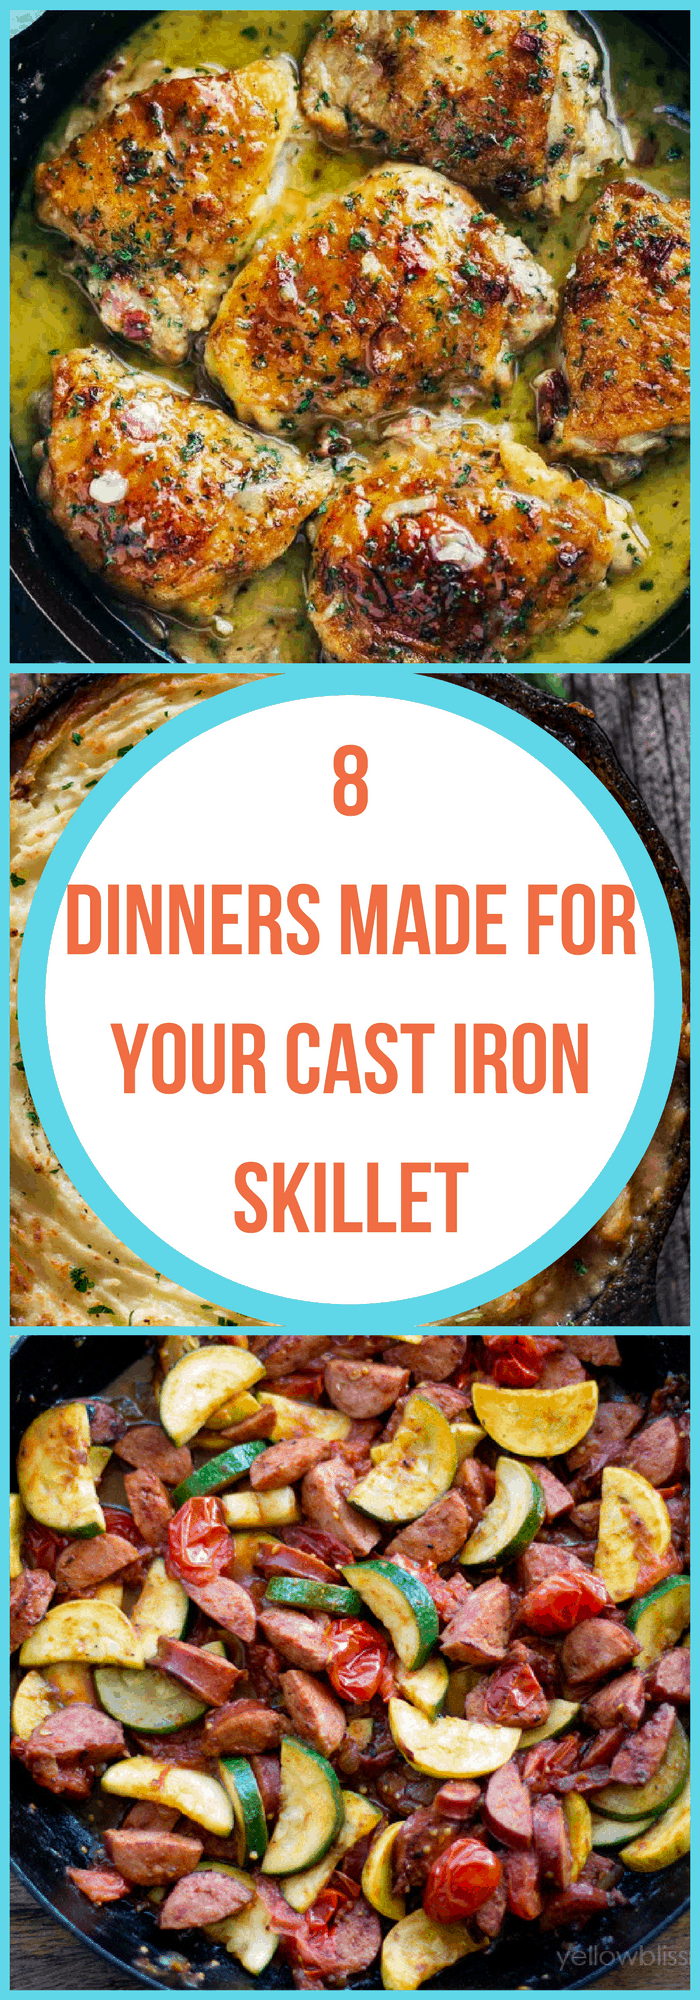 Cooking--Dinners Made for Your Cast Iron Skillet--The Organized Mom